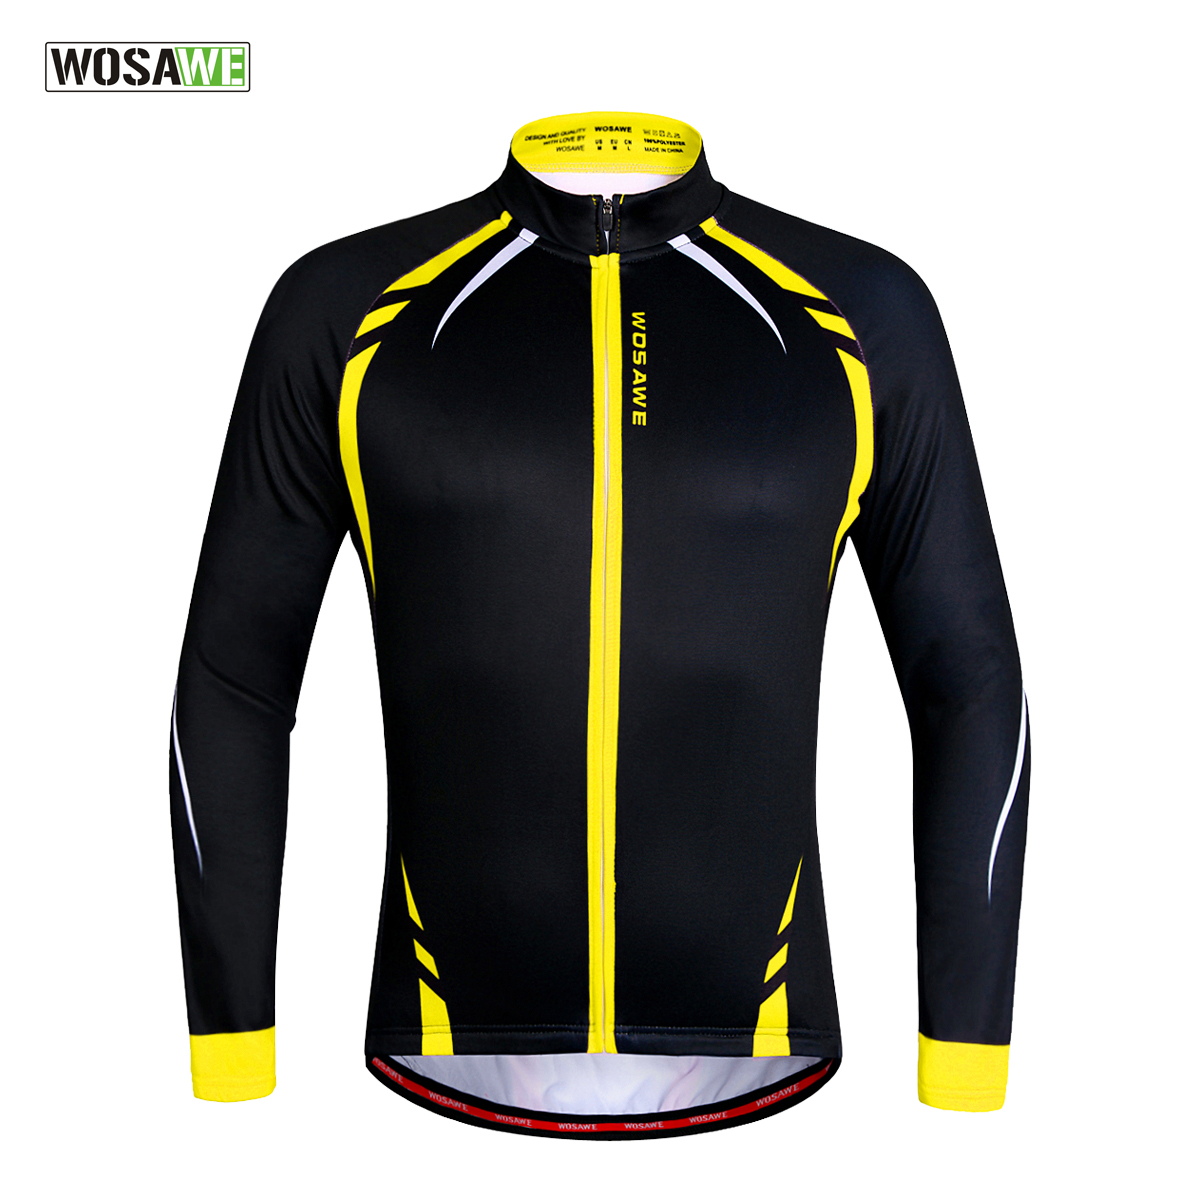 WOSAWE Thermal Cycling Jackets Yellow Windproof Langarmtrikot MTB Fahrrad Ciclismo Reflektierende Fleece-Radbekleidung